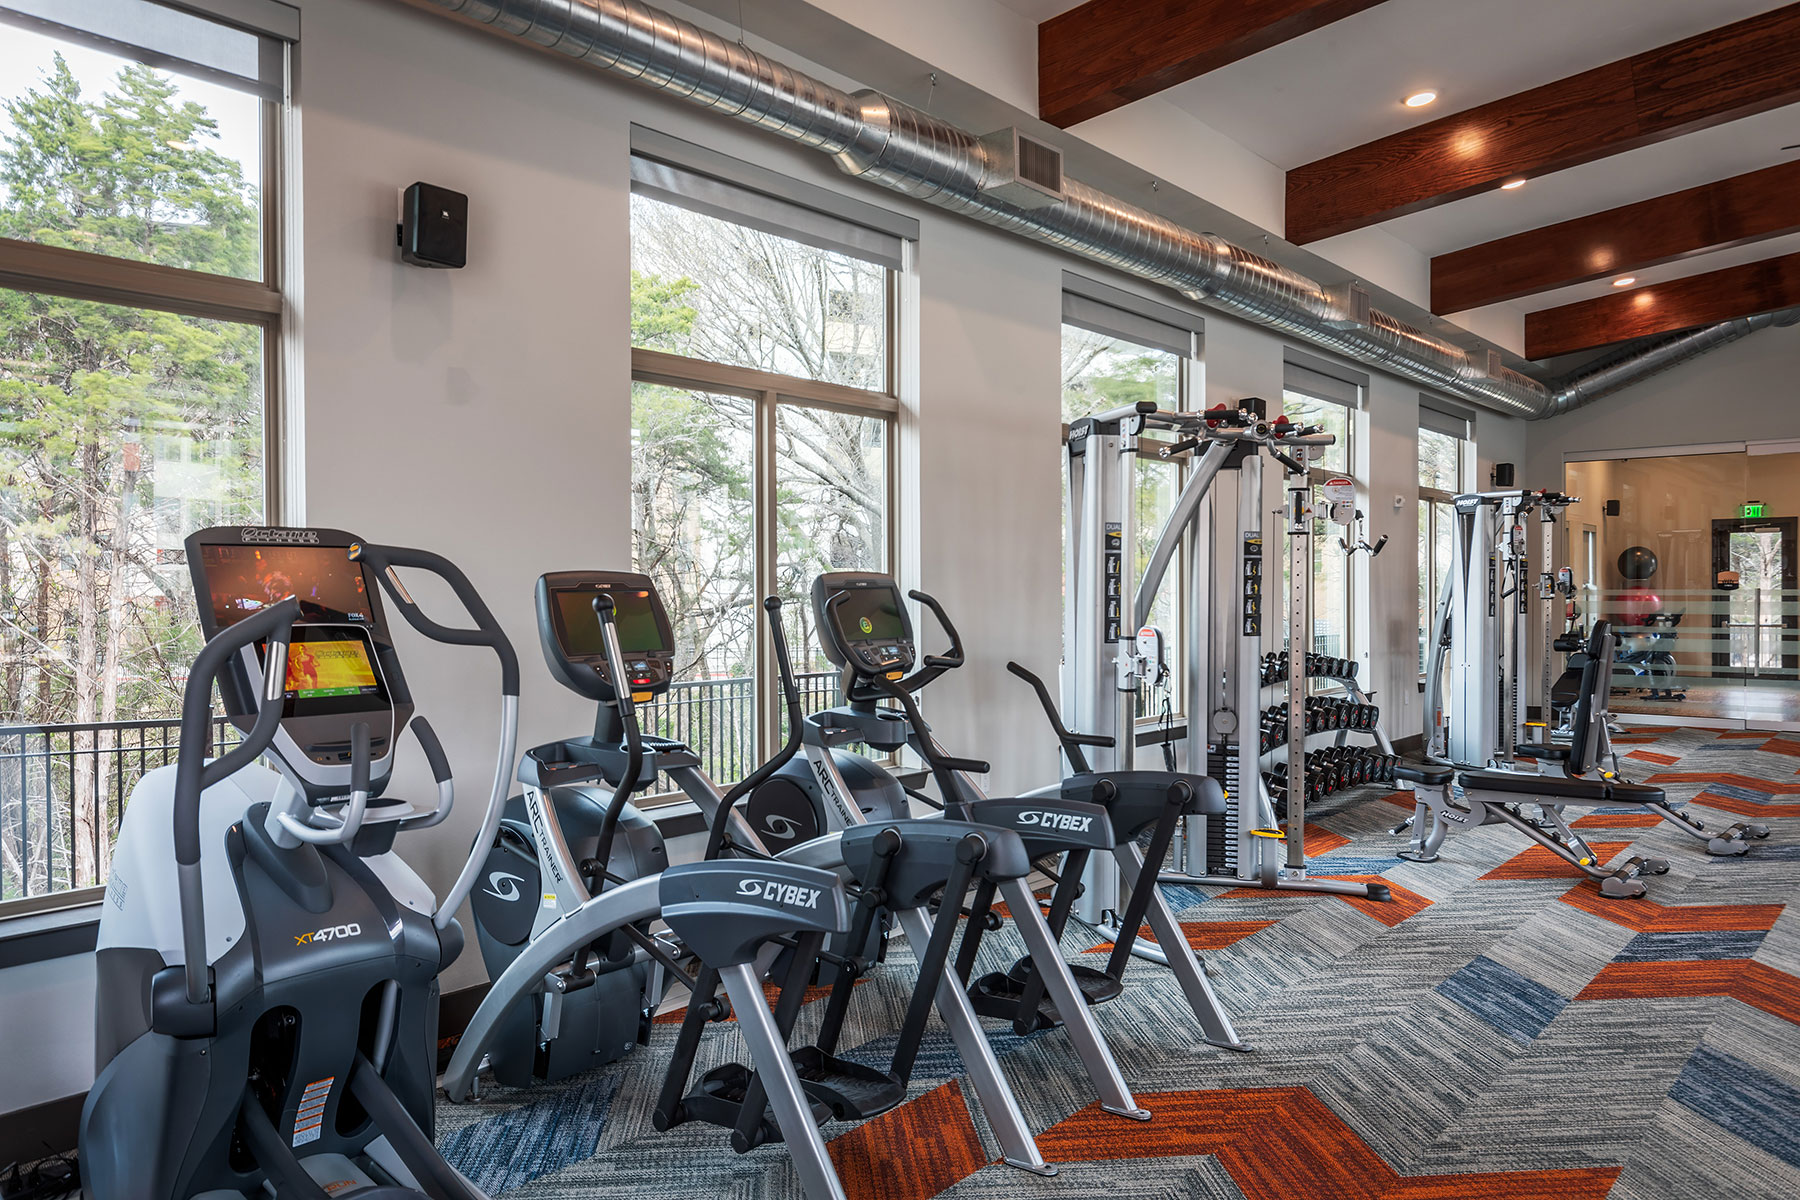 Fitness studio with elliptical machines, free weights, weight machines and large windows.